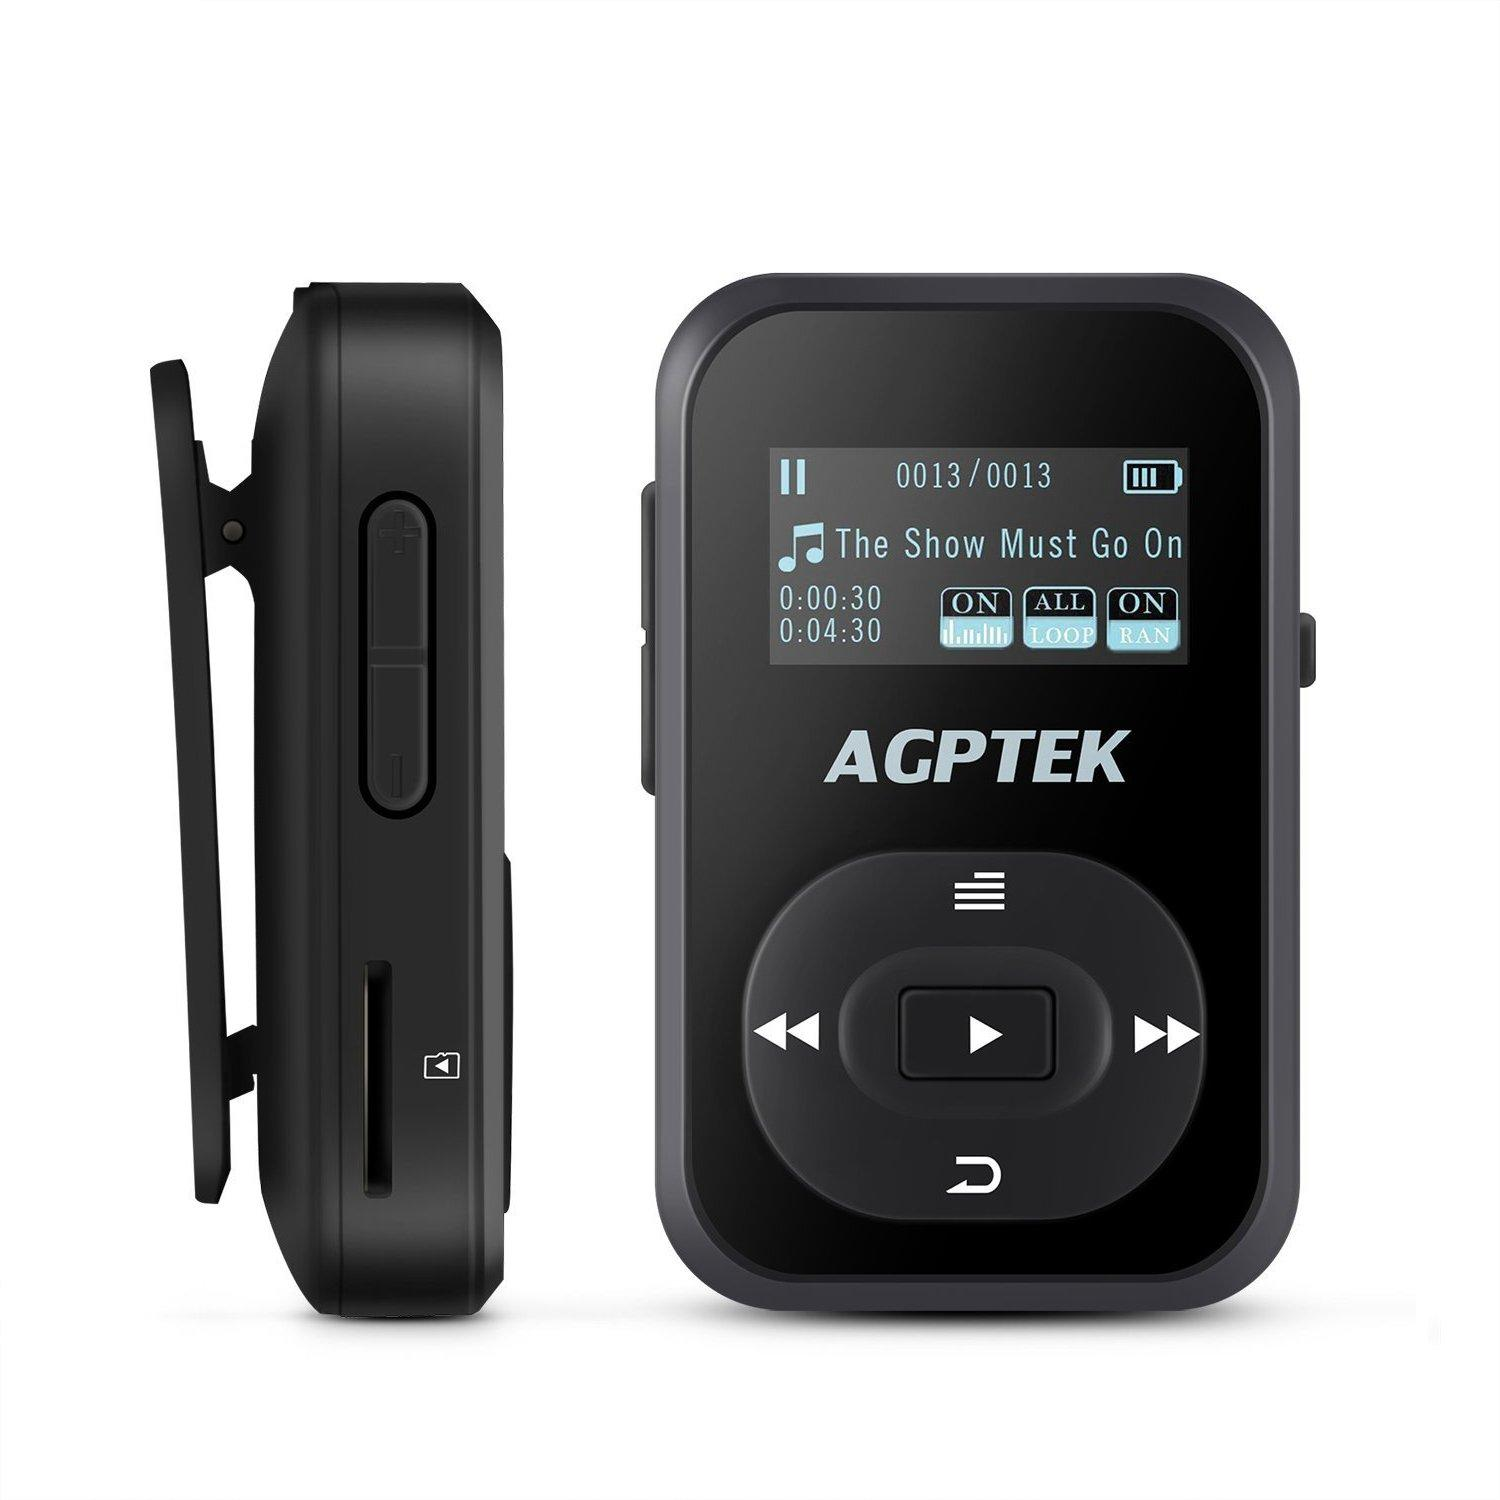 AGPTEK A26 Bluetooth MP3 Player (Best for Workout sessions MP3 Player)